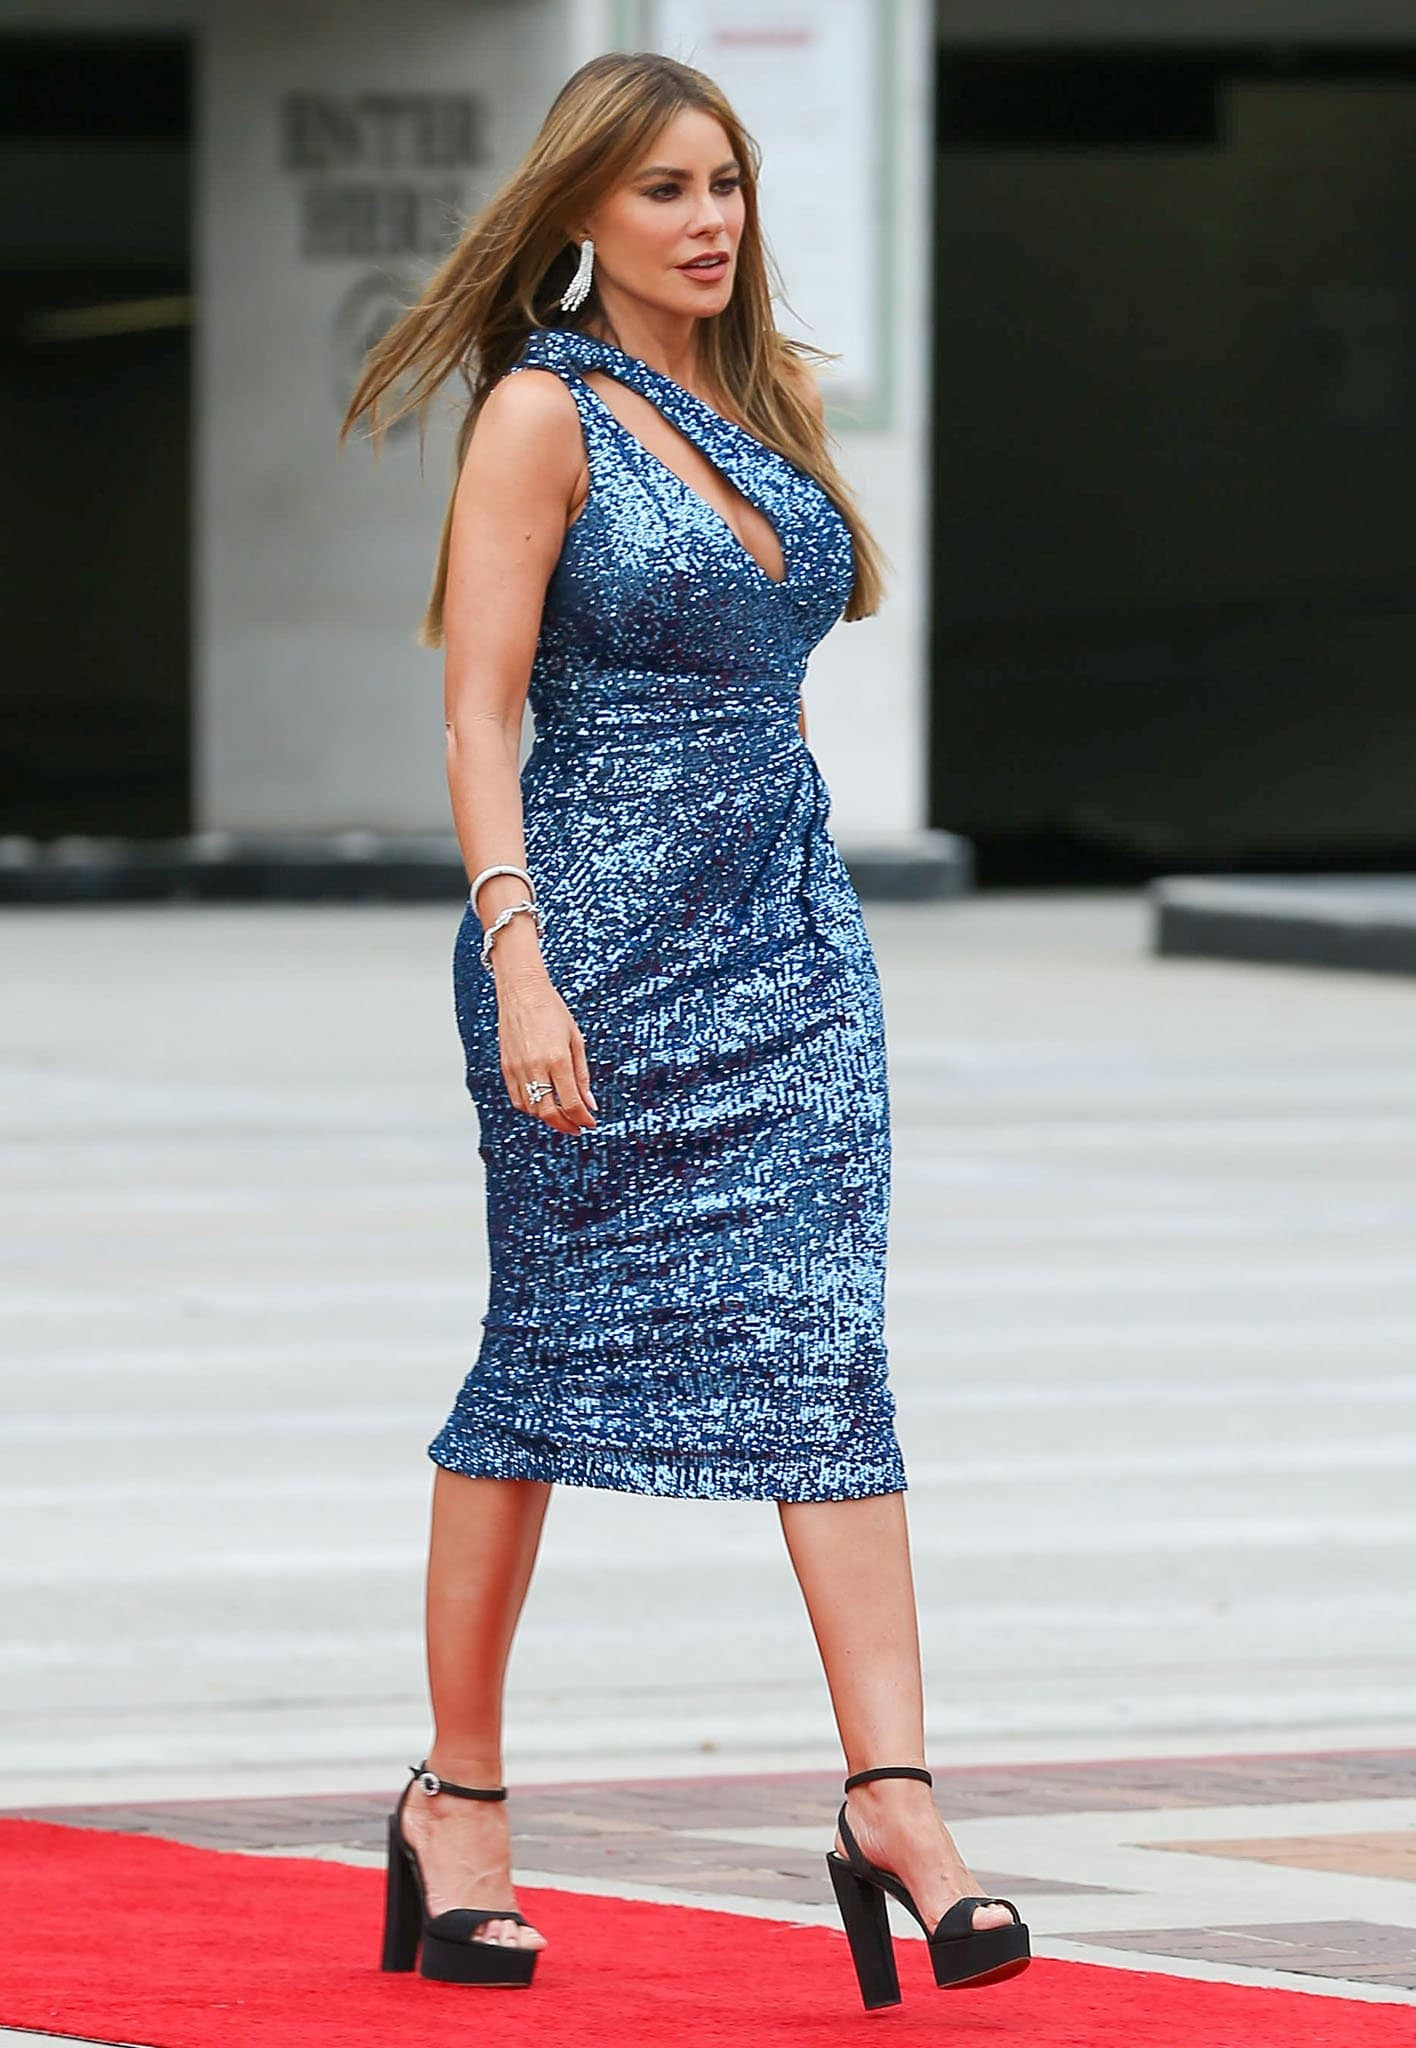 Sofia Vergara dresses up in Pamella Roland sequin dress for America's Got Talent taping on April 23, 2021